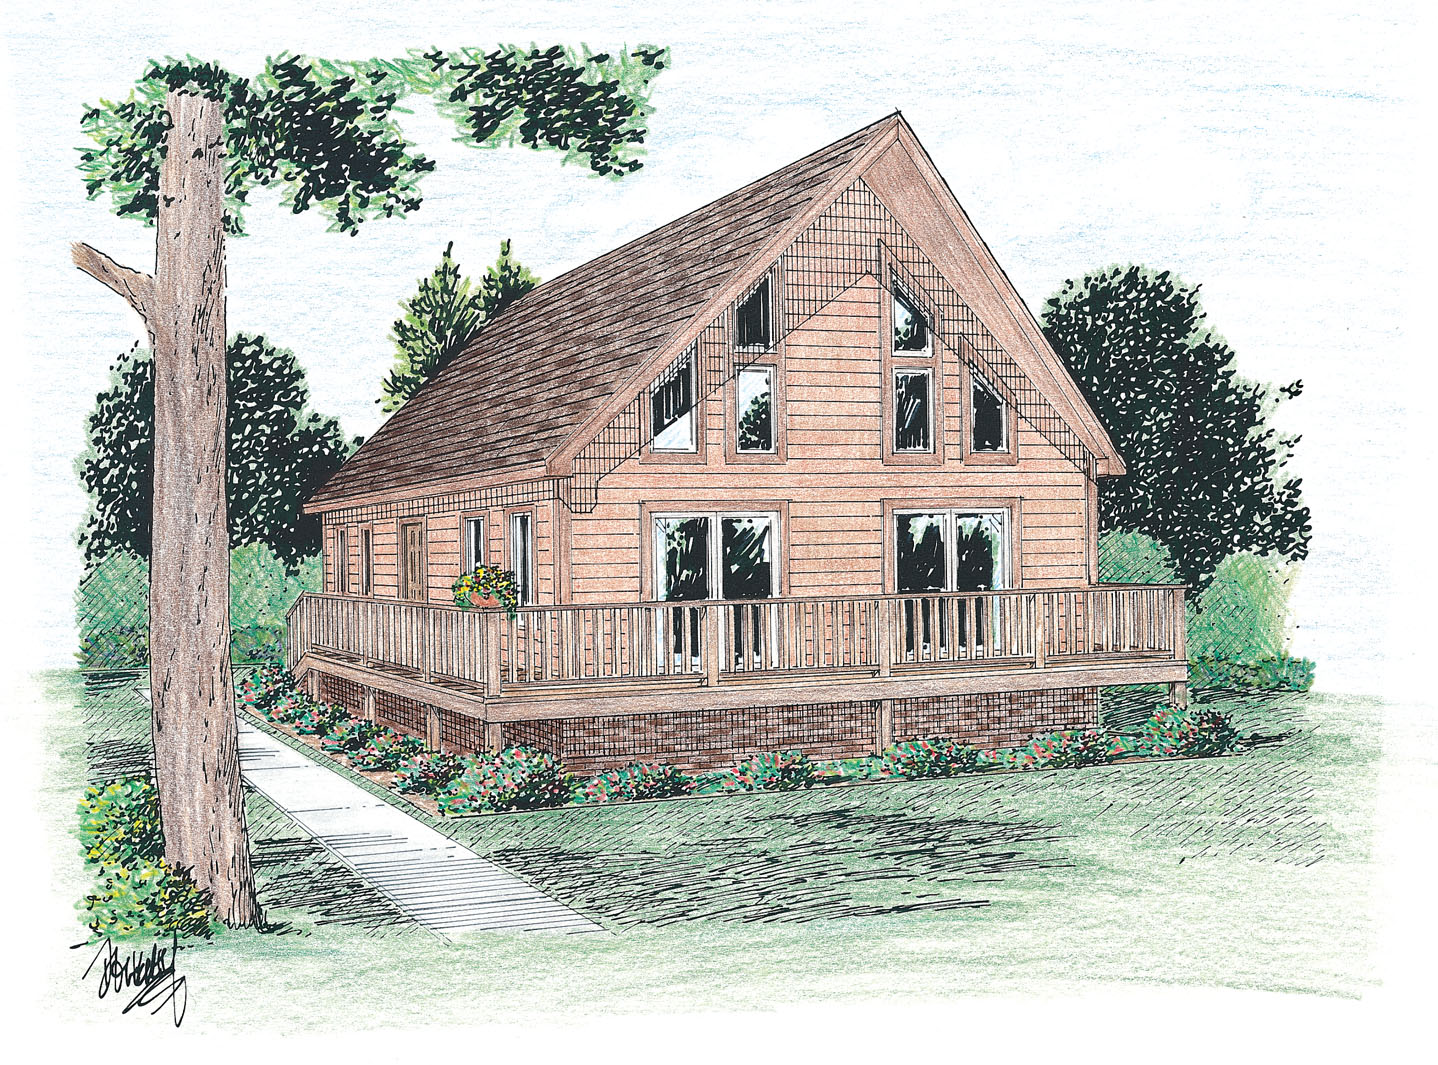 Grafton mountain modular homes inc new home models for Cape cod model homes